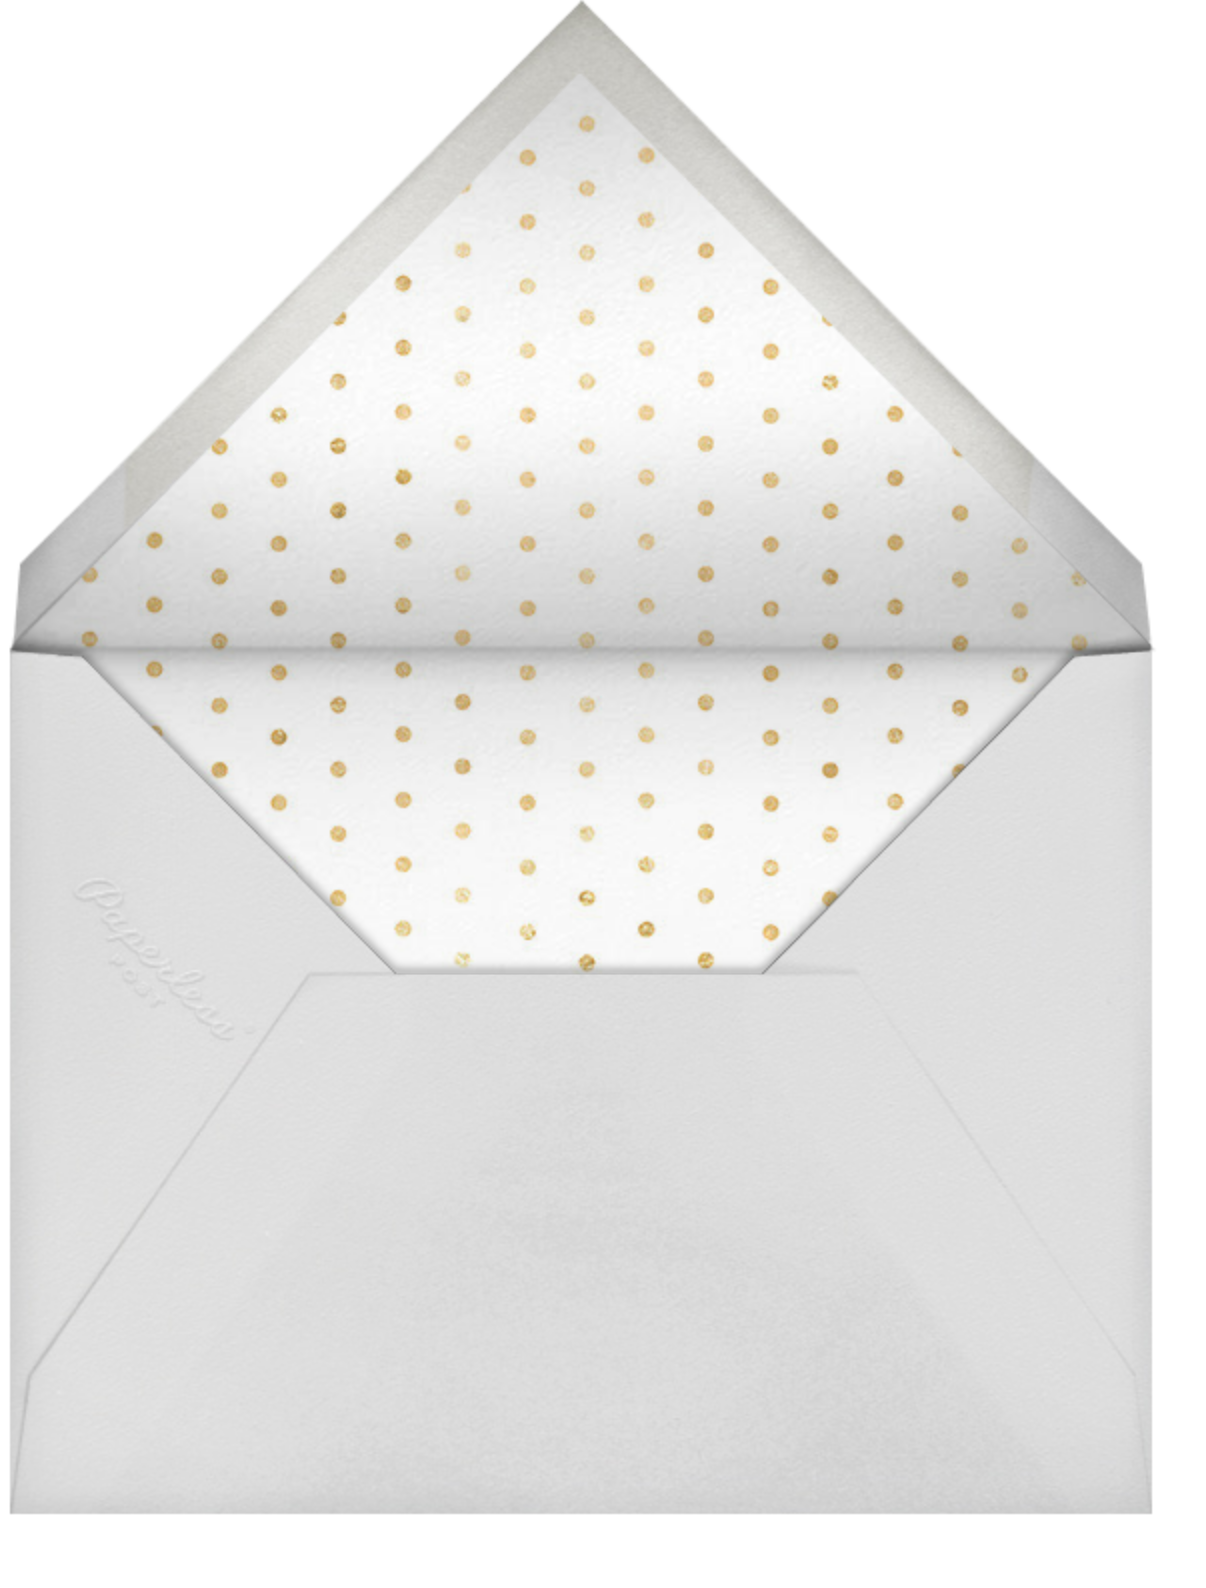 Twice as Merry - Sugar Paper - Christmas party - envelope back